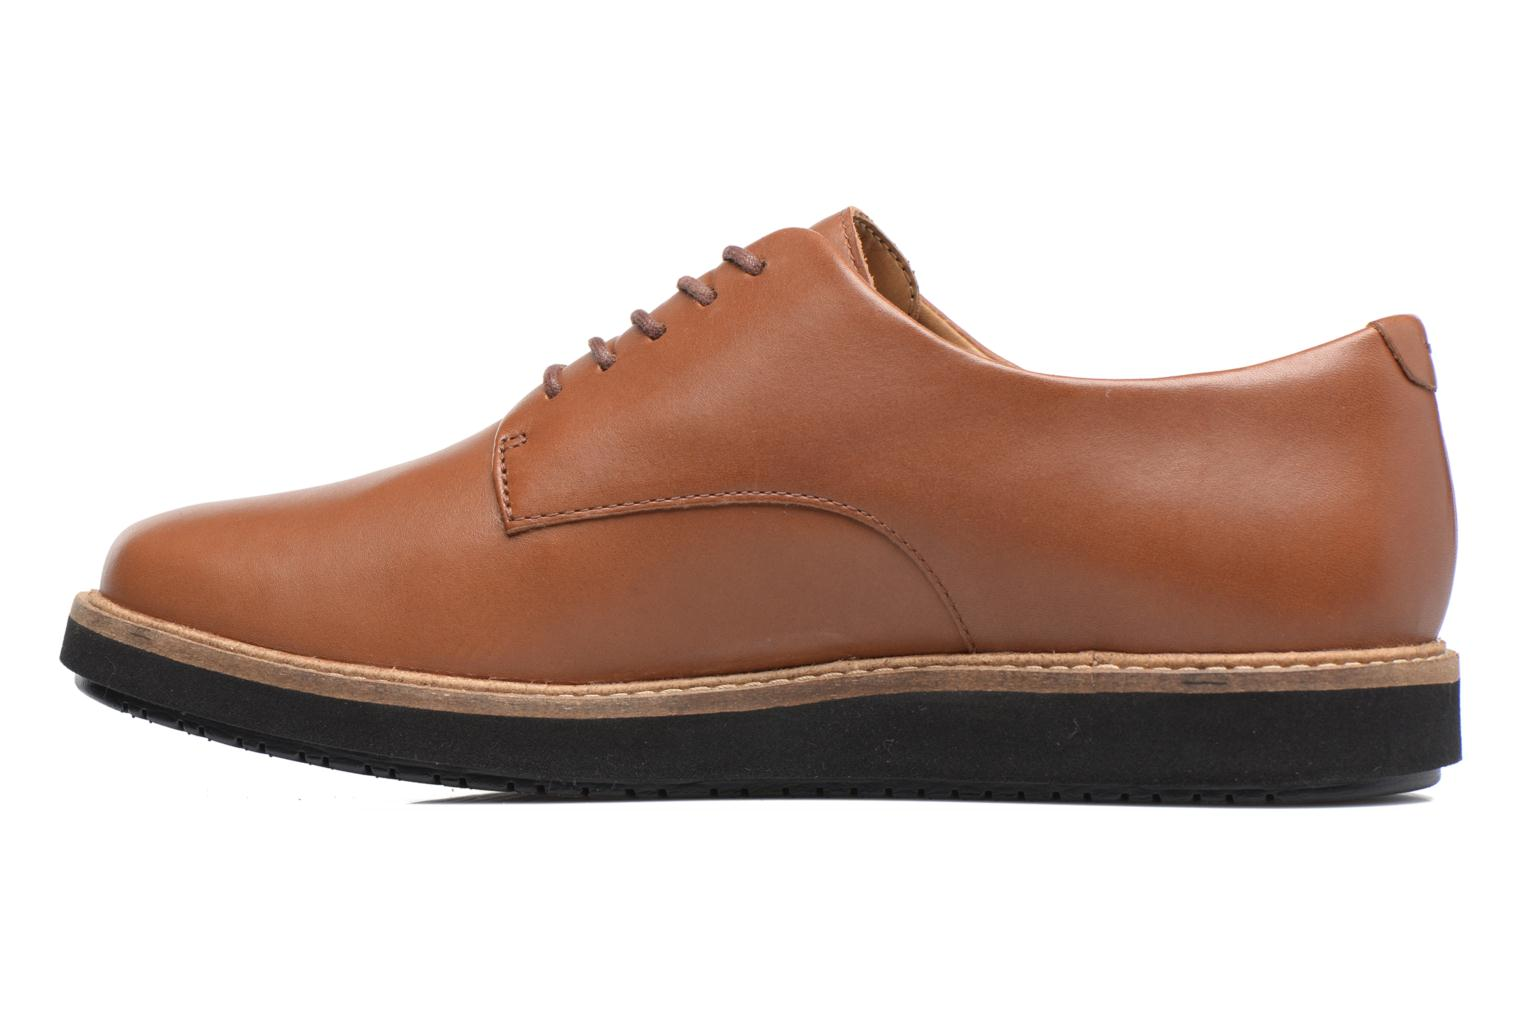 Chaussures à lacets Clarks Glick Darby Marron vue face